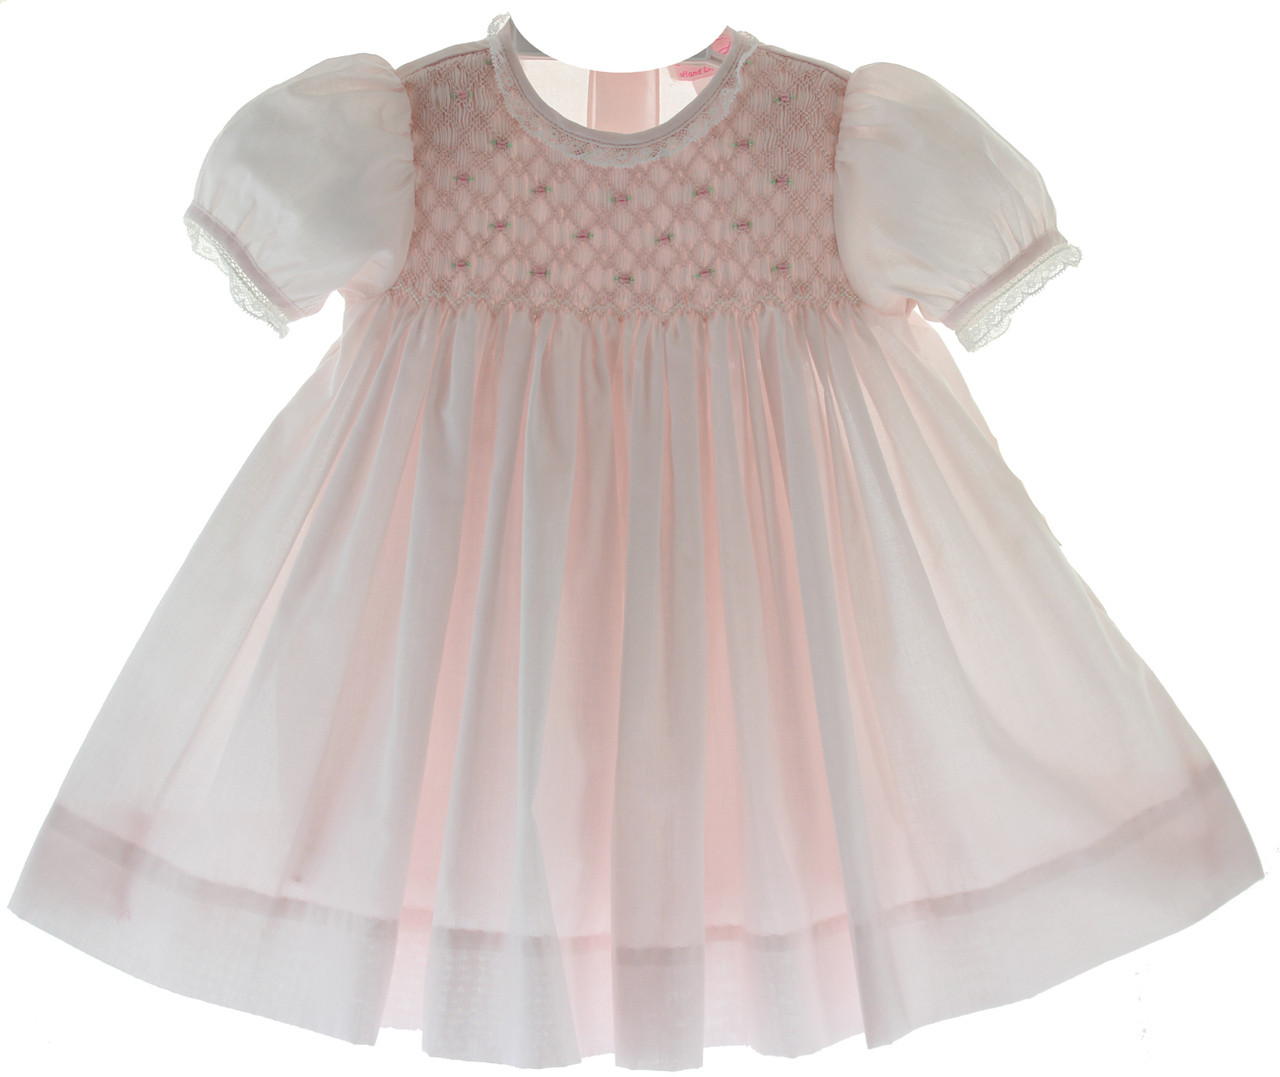 f6f6f9d9d Infant Girls Pink Smocked Bodice Dress Lace Trim. Click to enlarge